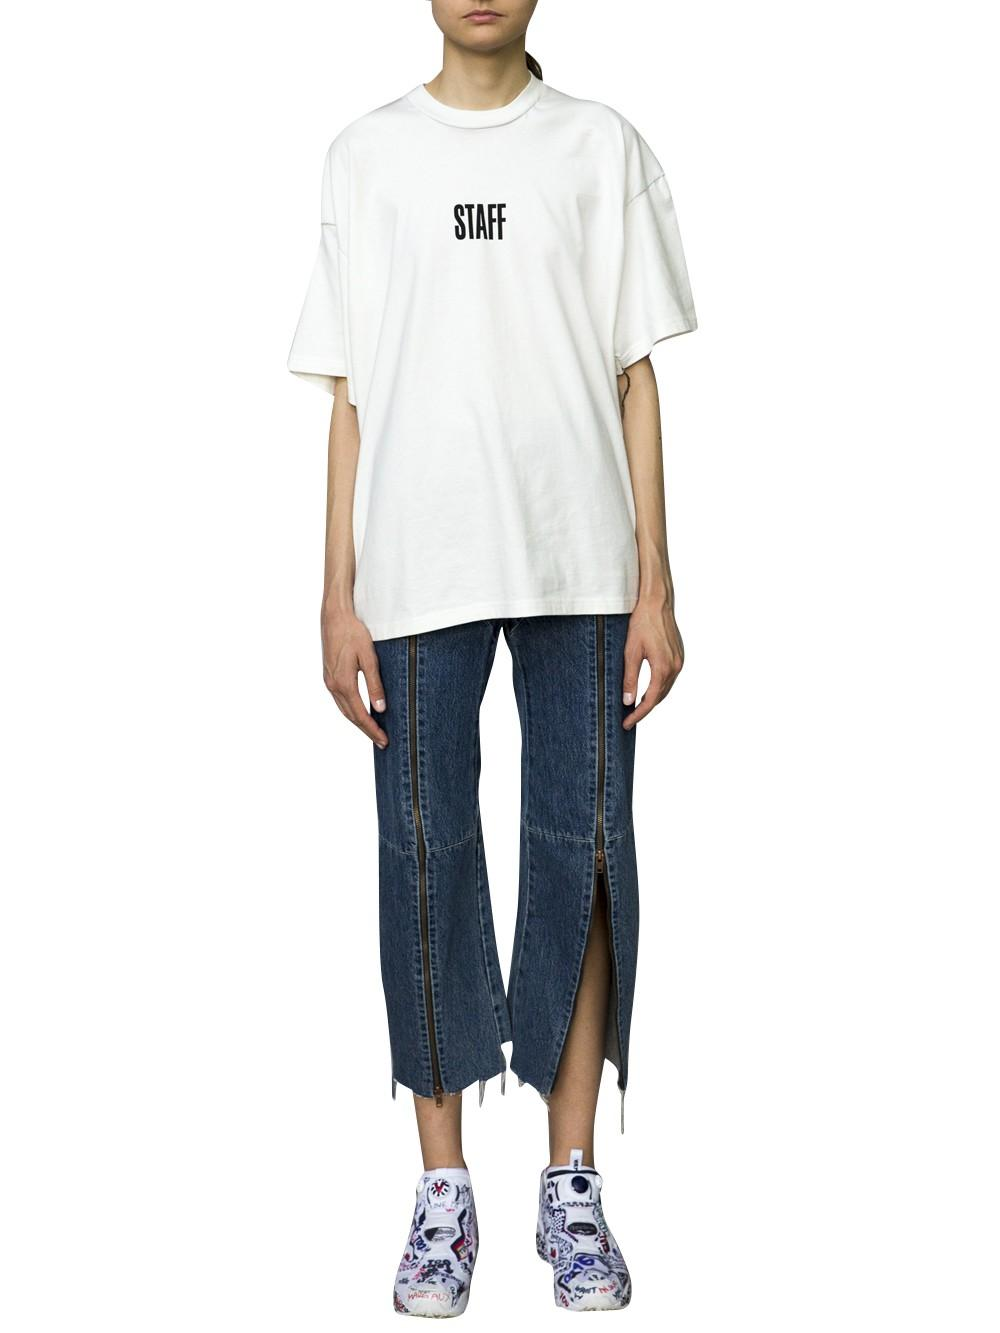 vetements x hanes 39 staff 39 t shirt in white lyst. Black Bedroom Furniture Sets. Home Design Ideas